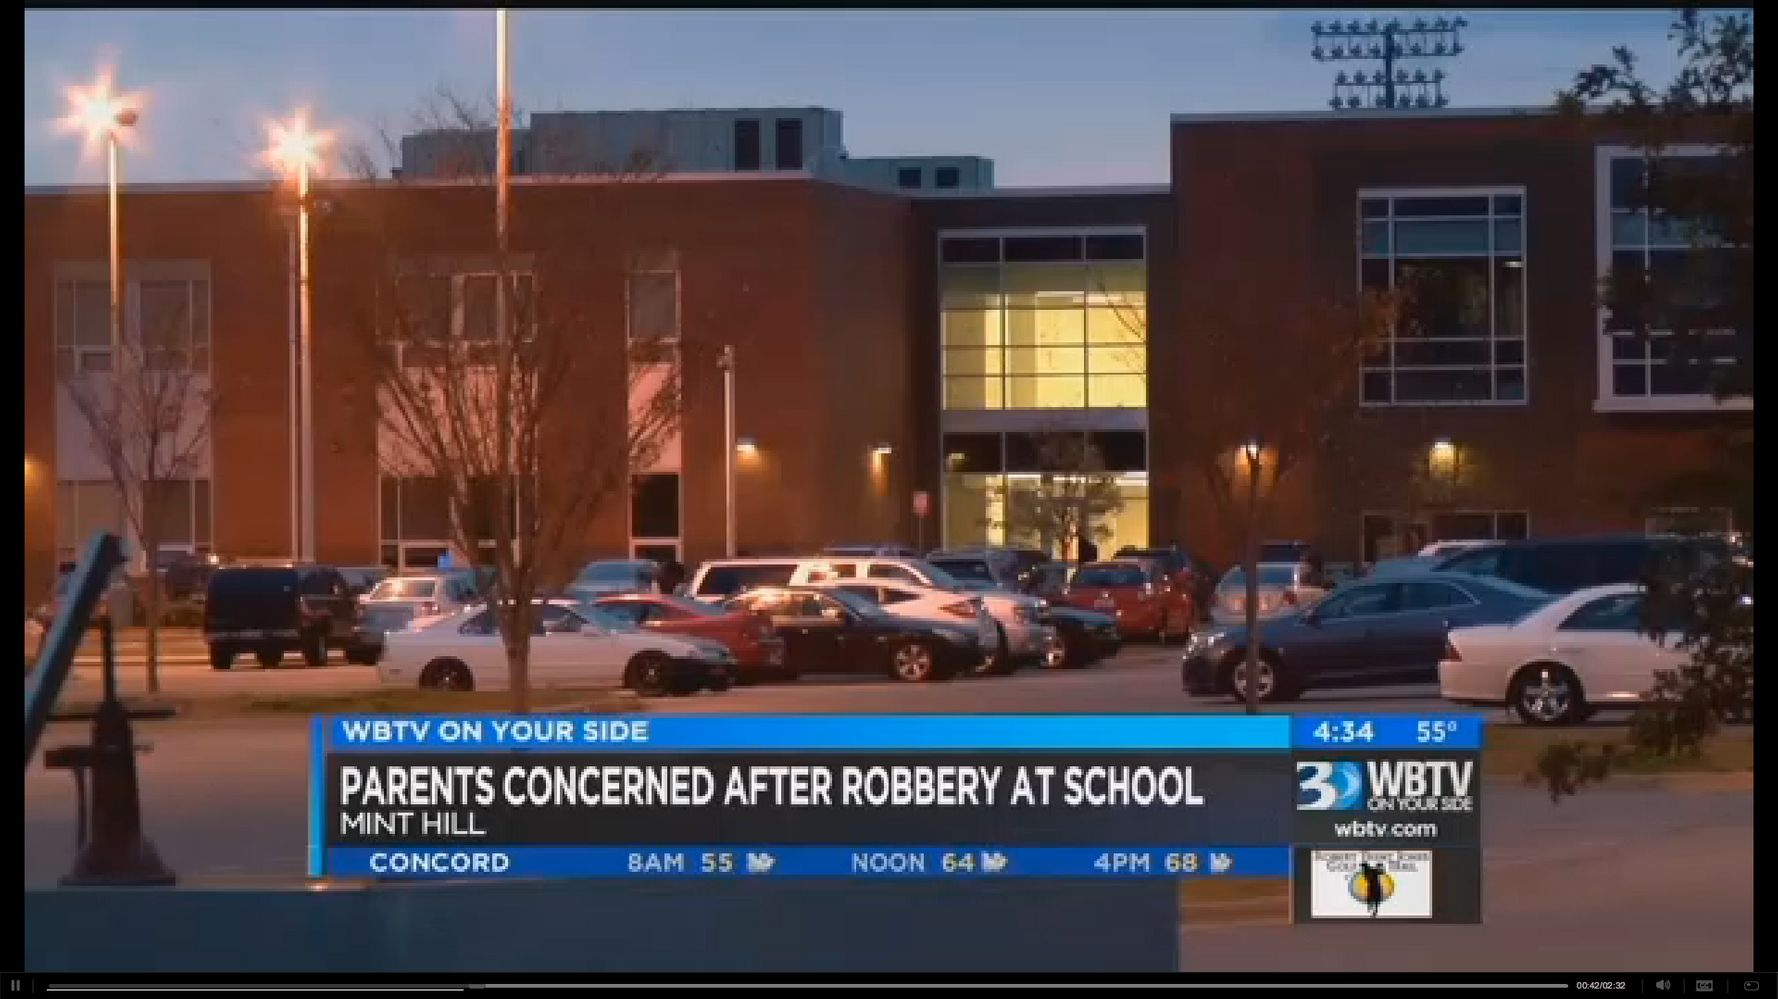 Teens Arrested After Allegedly Robbing Classmate With Gun At School